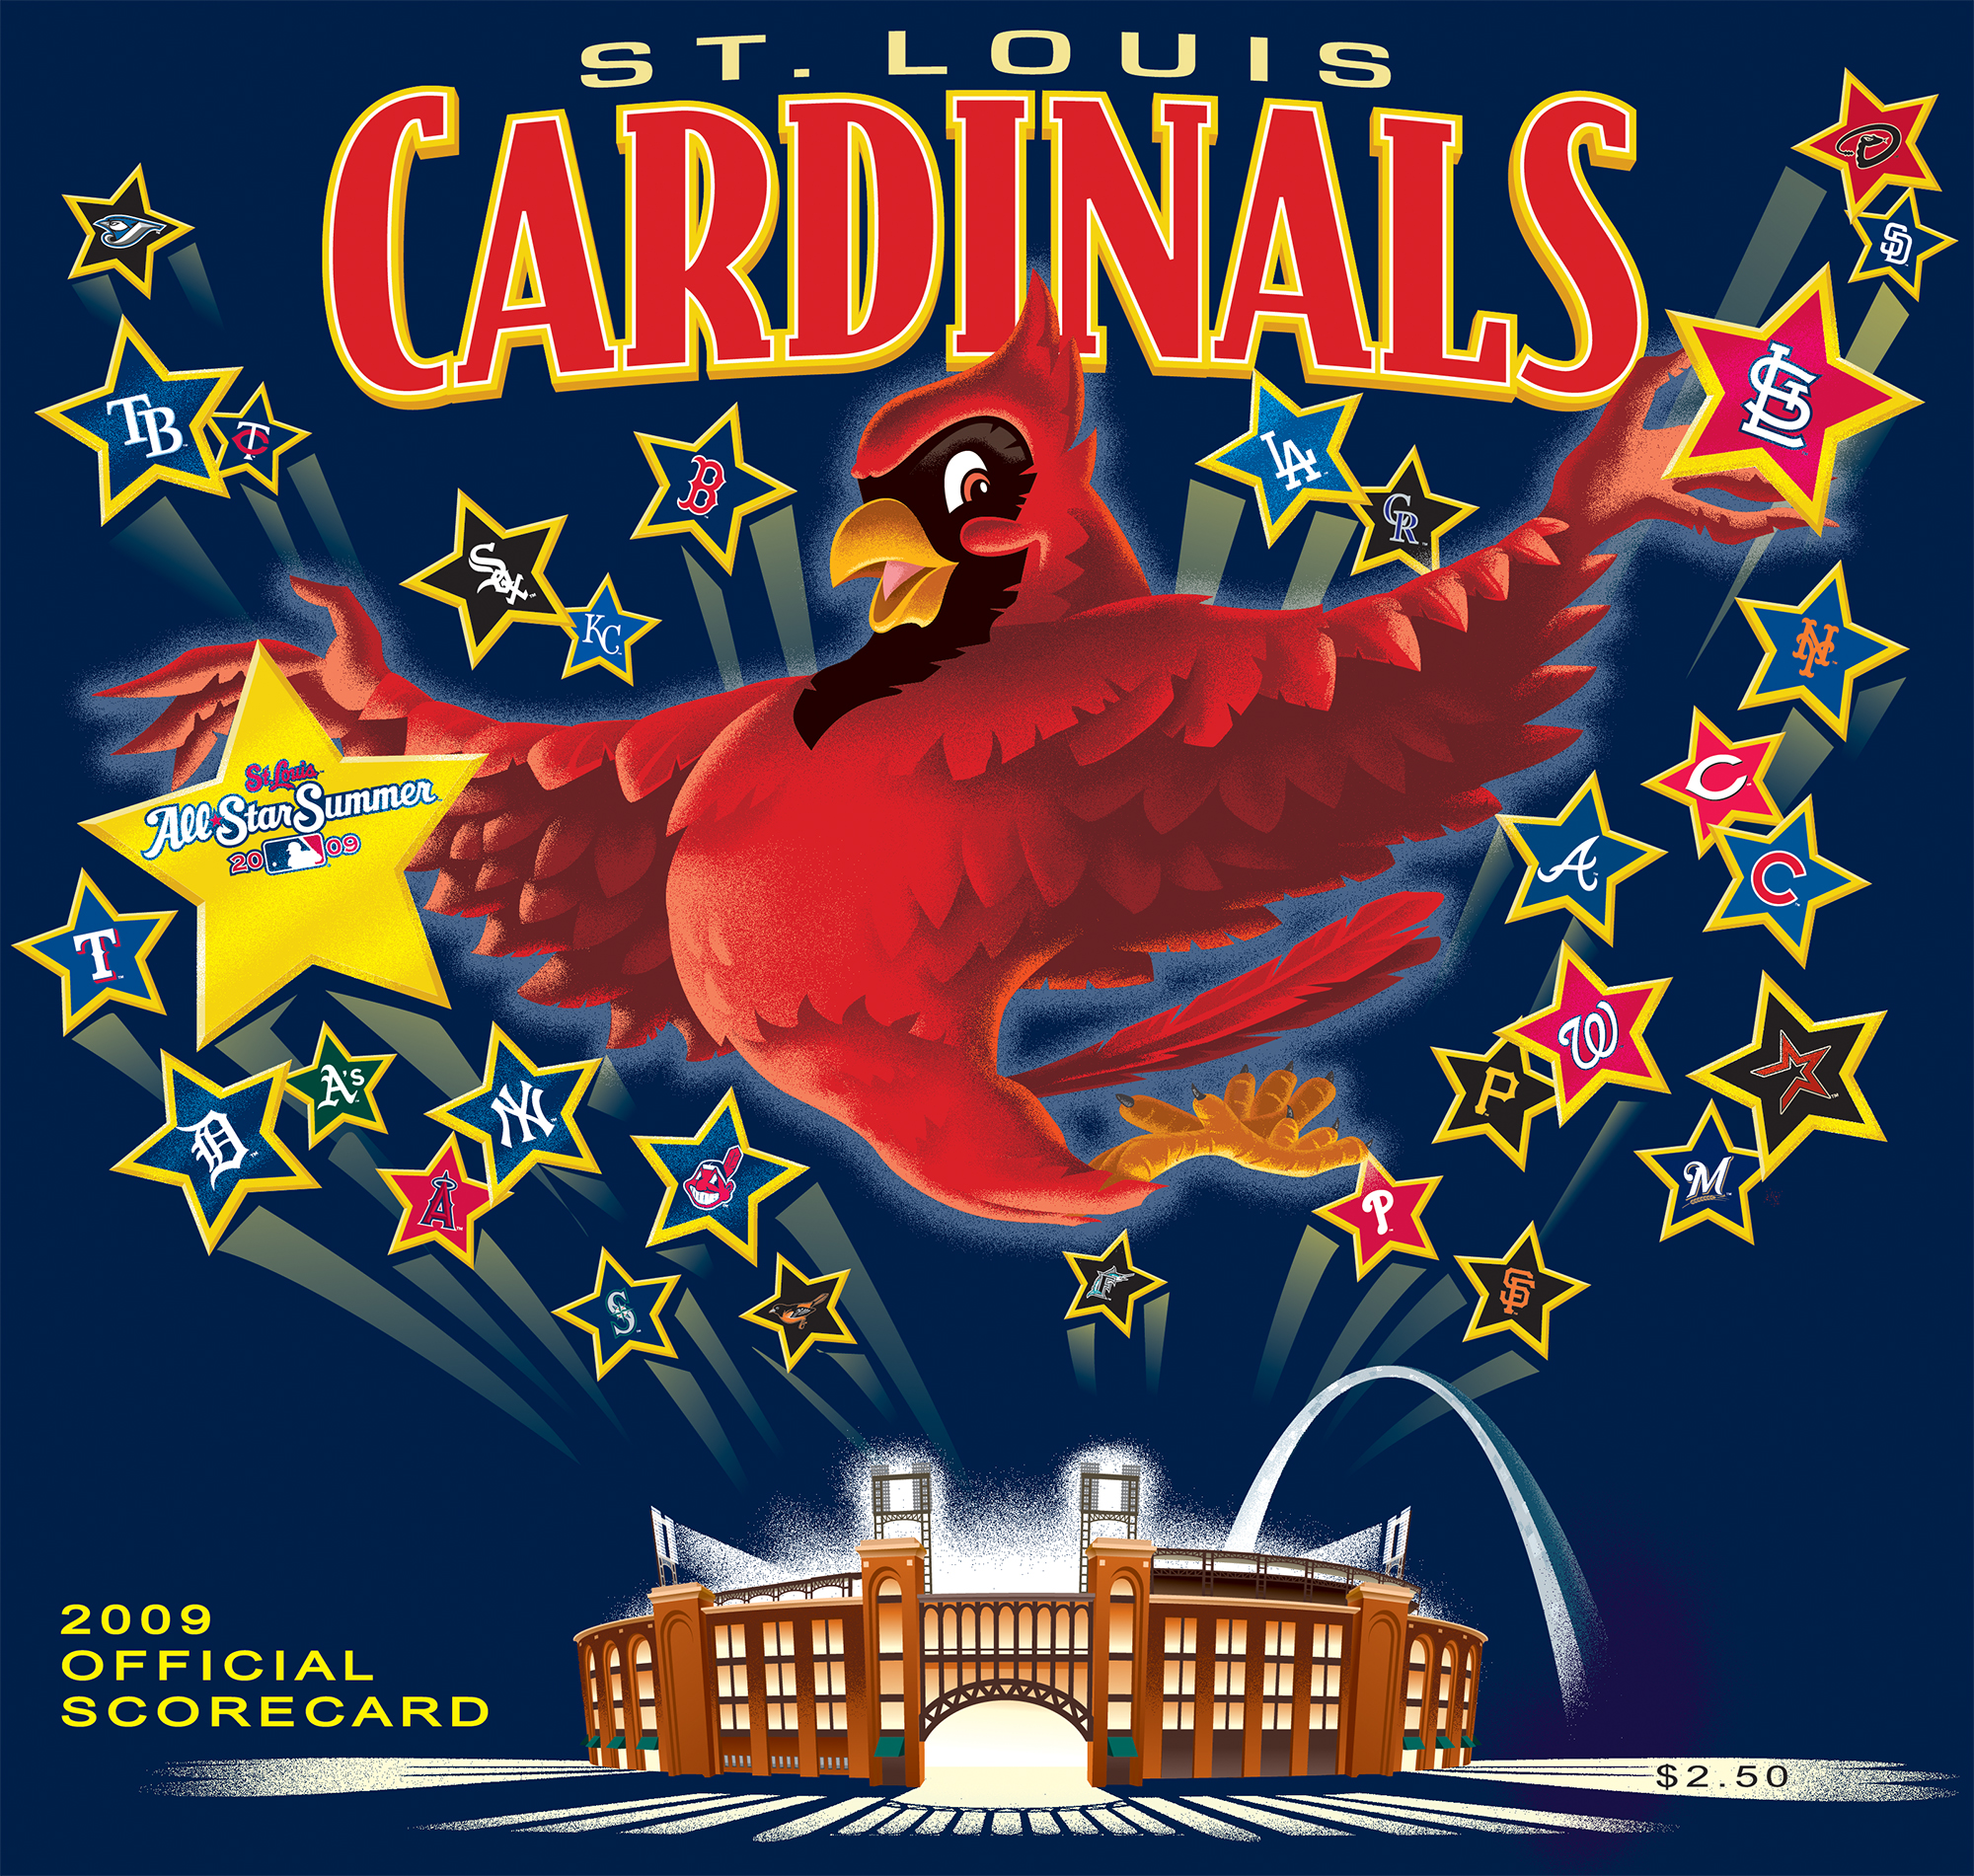 2009 Cardinals Official Scorecard